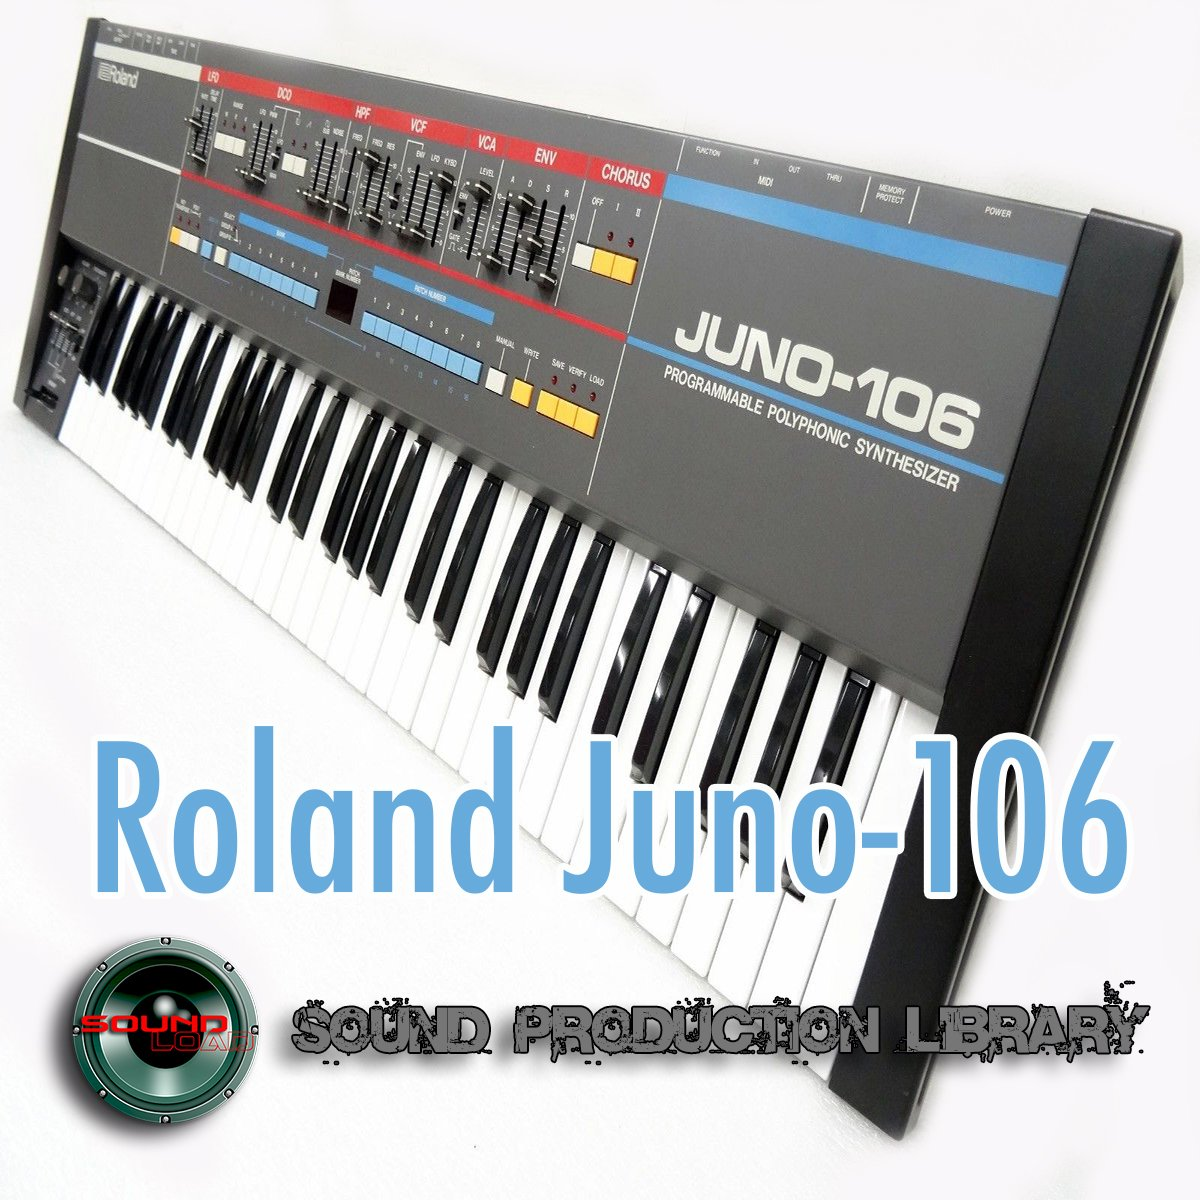 for Roland Juno-106 - the KING of Analog sound - unique original Huge WAVE/Kontakt Multi-Layer Samples Library on DVD or download by SoundLoad